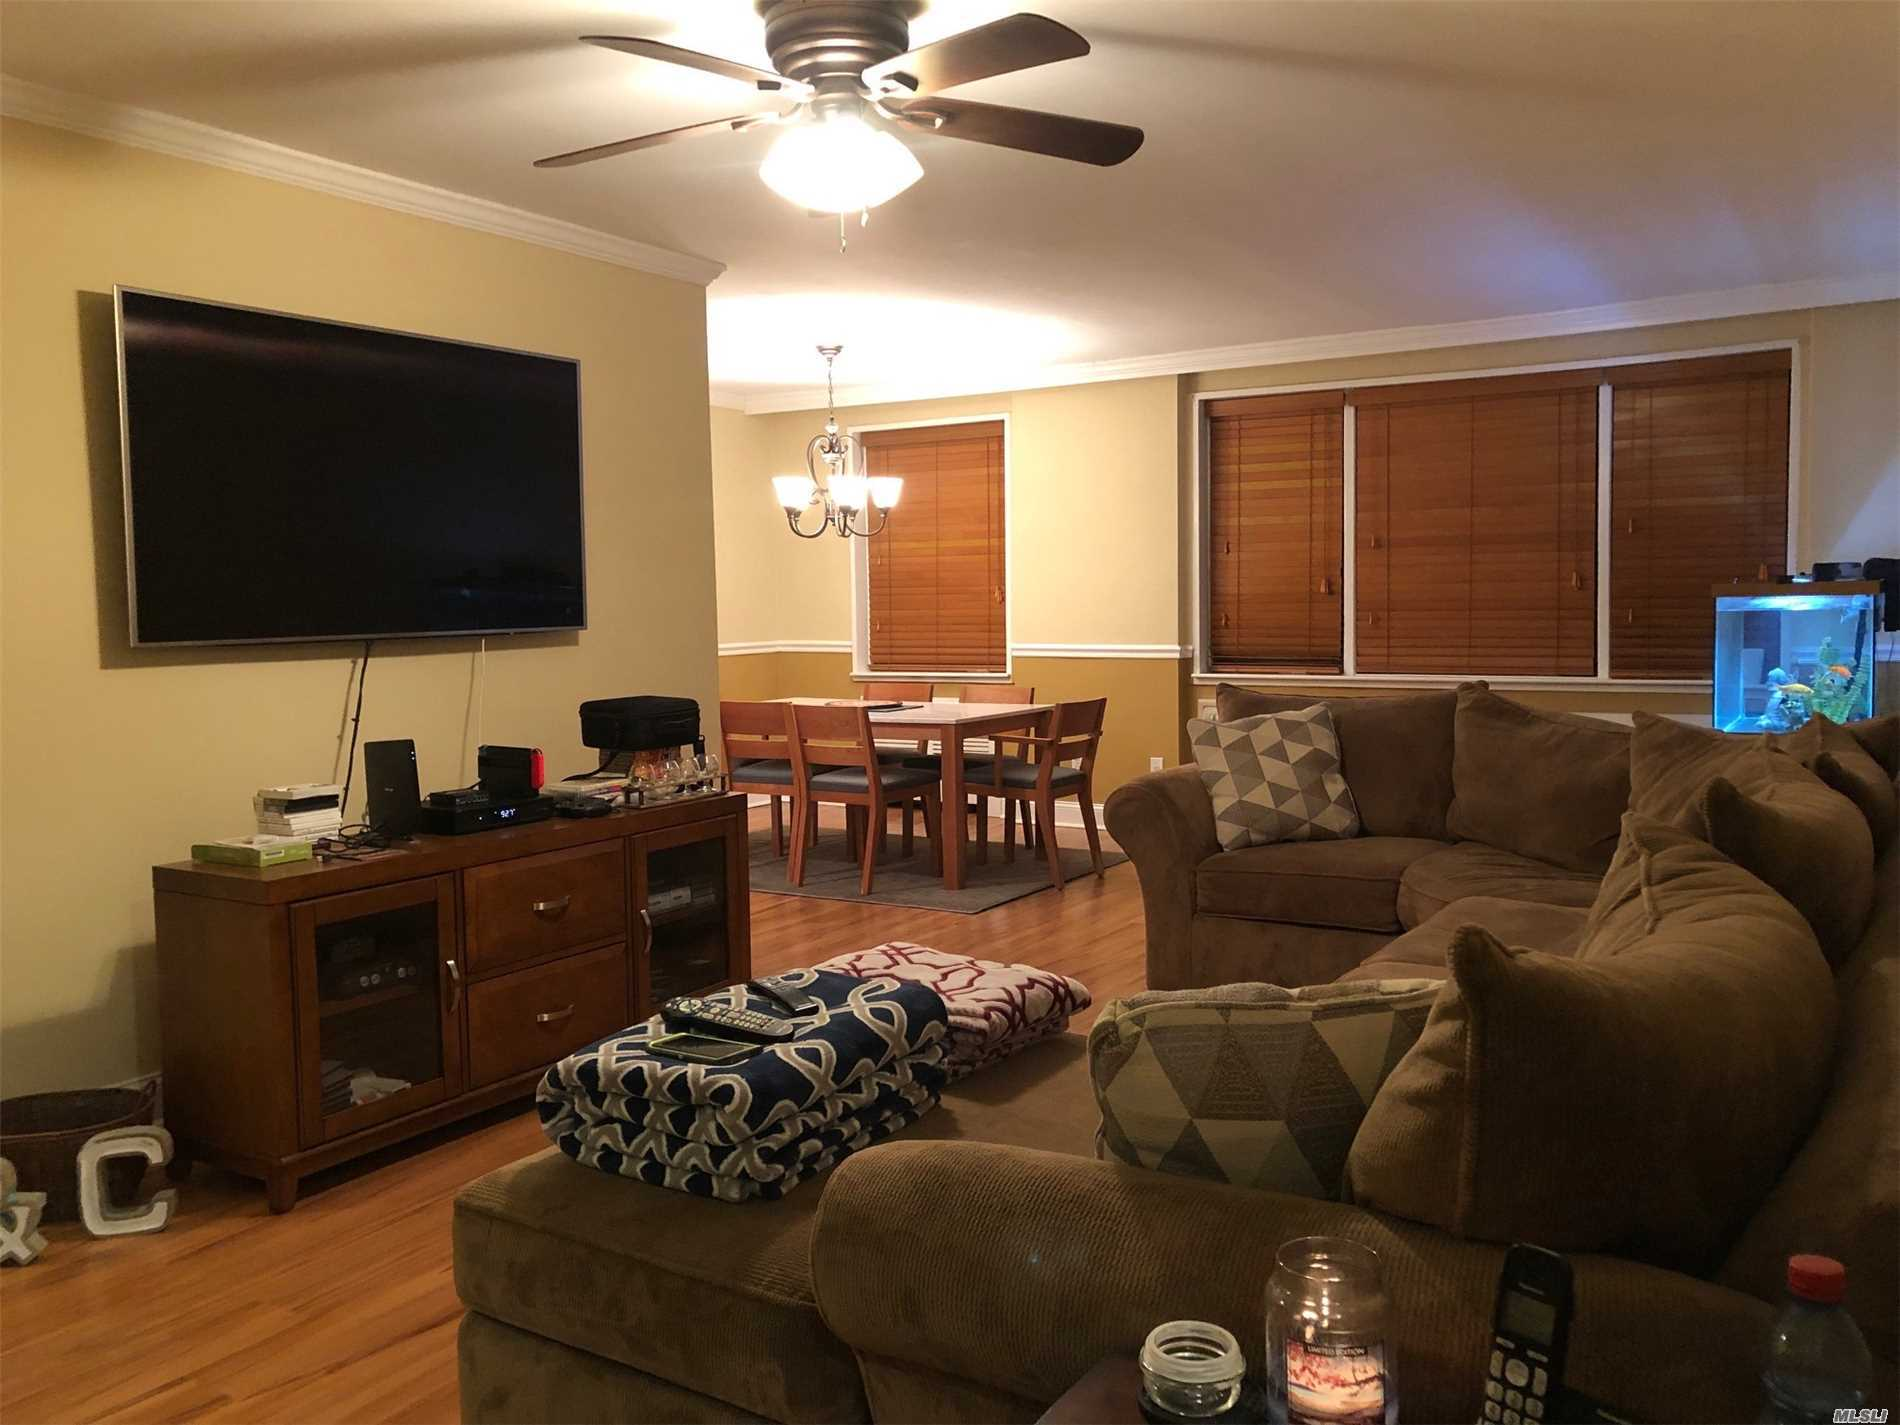 Very spacious 1 bedroom on the 1st floor with updates including kitchen with wood cabinets, ceramic tiled floors & counters, , bath, vinyl wood floors, new carpeting in Bedroom. Freshly painted, wood blinds, new ceiling fans, closets galore, alcove area which is roomy enough for an office set up! OPEN HOUSE CANCELLED. BY APPOINTMENT ONLY!